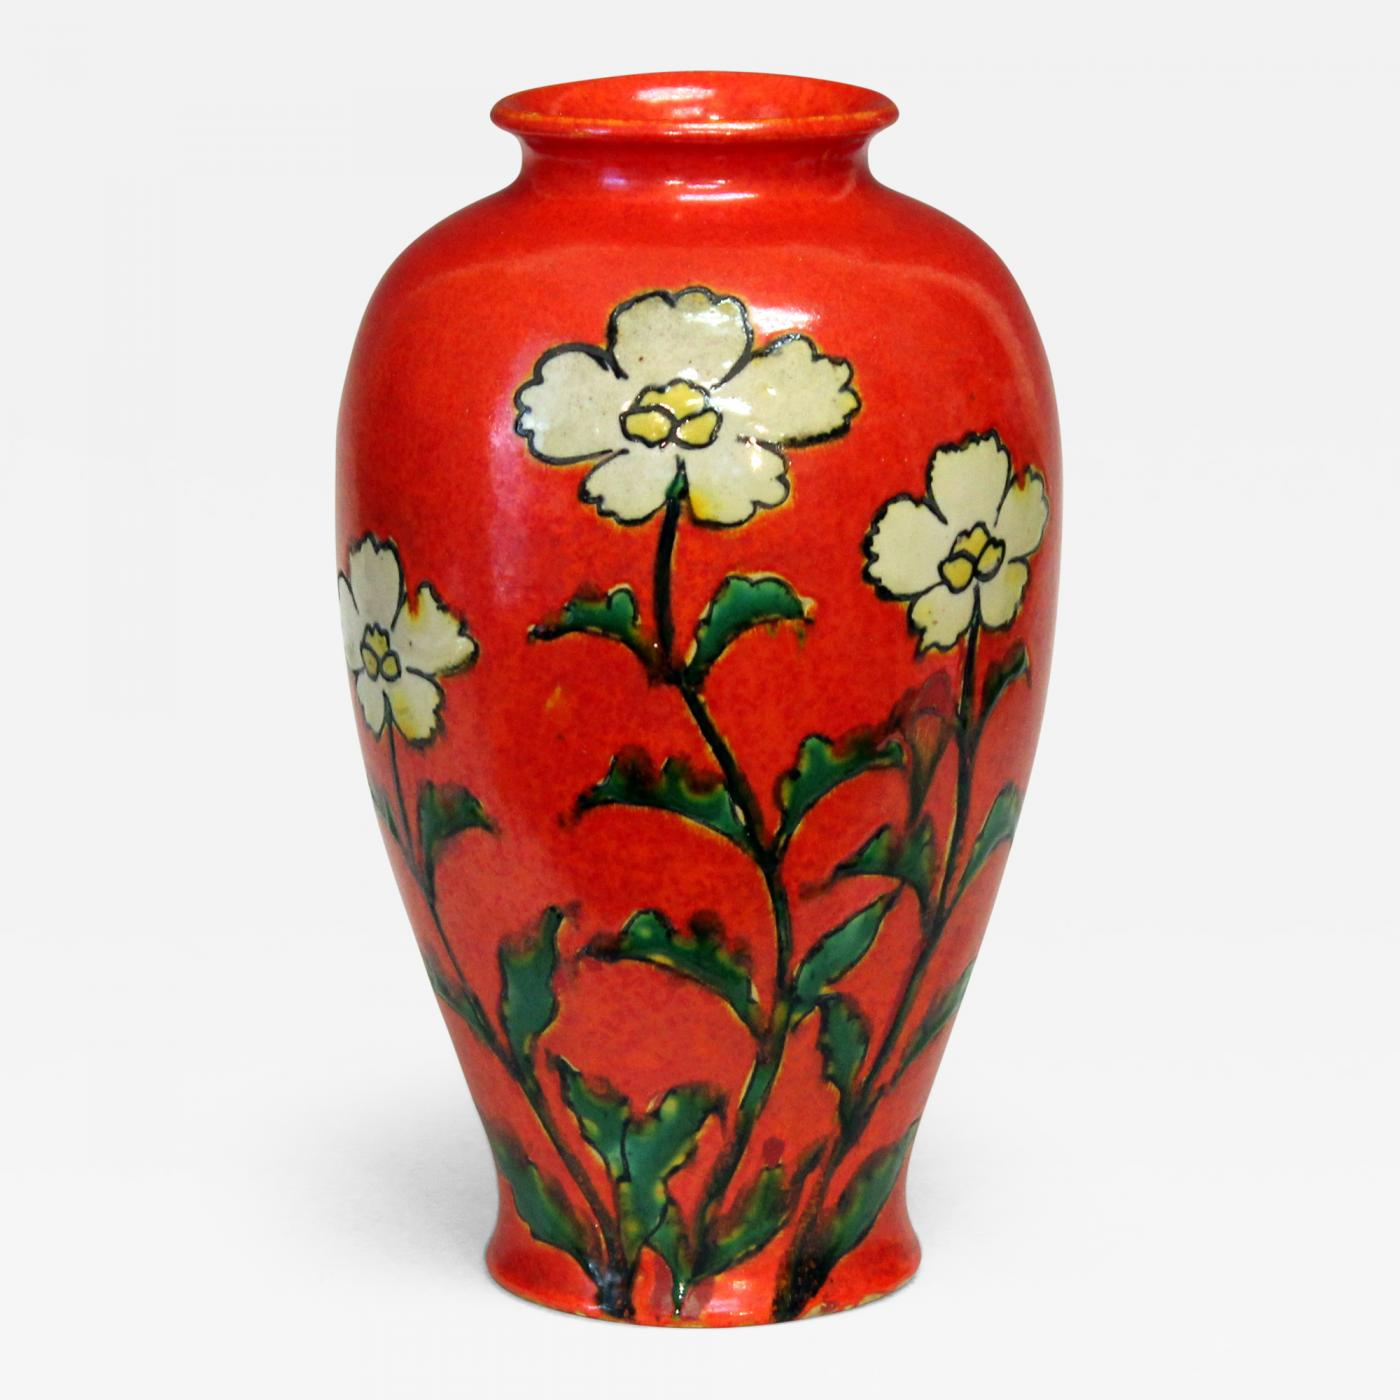 https://cdn.incollect.com/sites/default/files/zoom/-Awaji-Pottery-Awaji-Pottery-Art-Deco-Japanese-Chrome-Orange-Flower-Vase-168514-228419.jpg